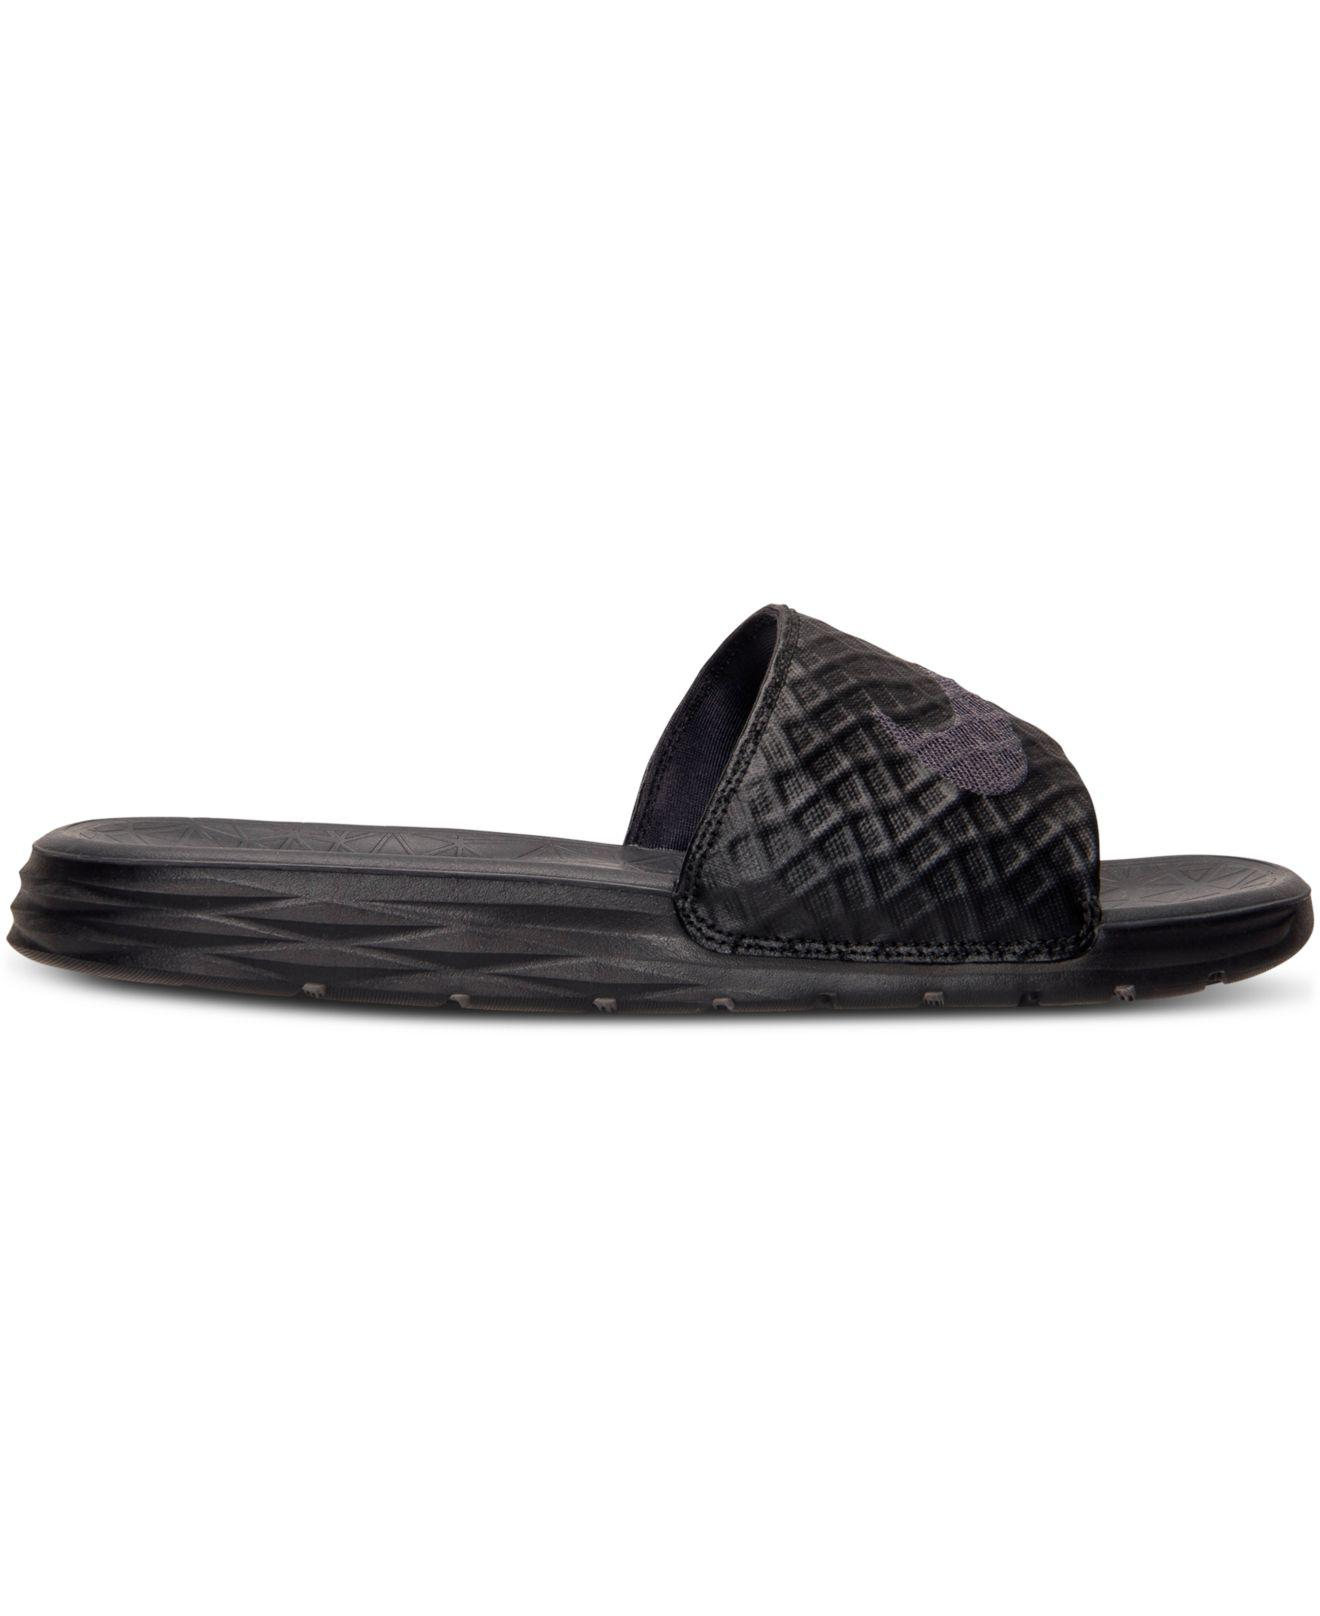 8ebee7623 Lyst - Nike Benassi Solarsoft Black  Anthracite in Black for Men - Save 28%